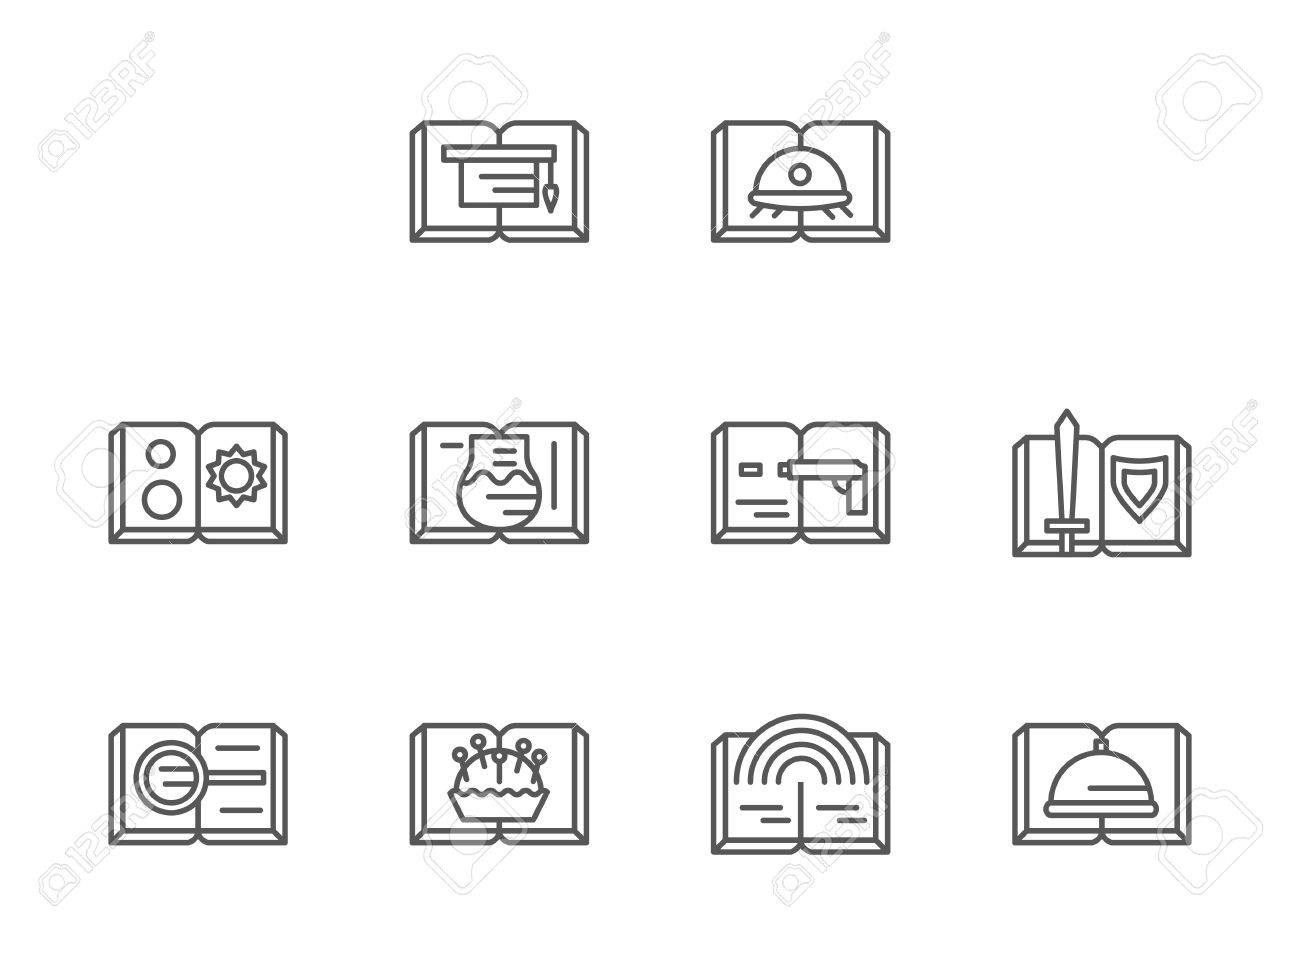 Different genres of book stories symbols for library book different genres of book stories symbols for library book stored tale collections buycottarizona